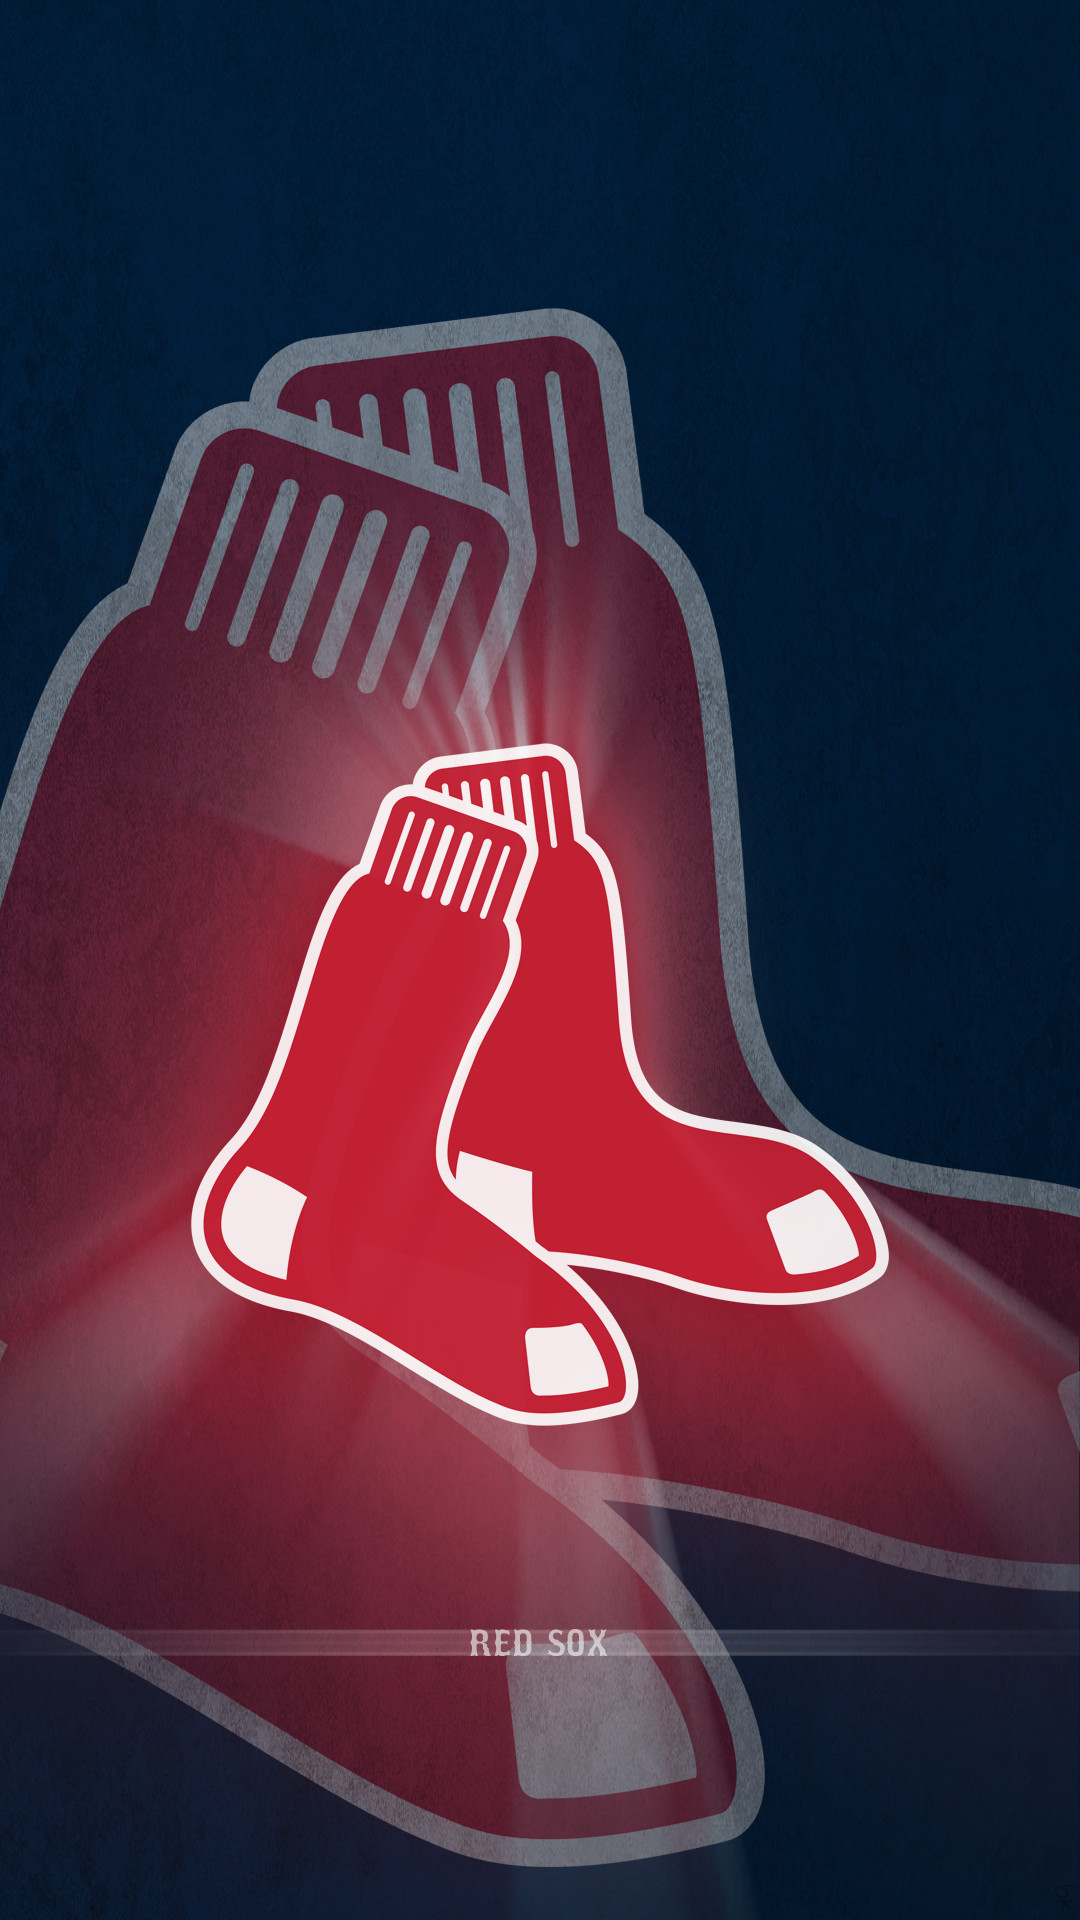 1080x1920 Boston Red Sox 1080.png